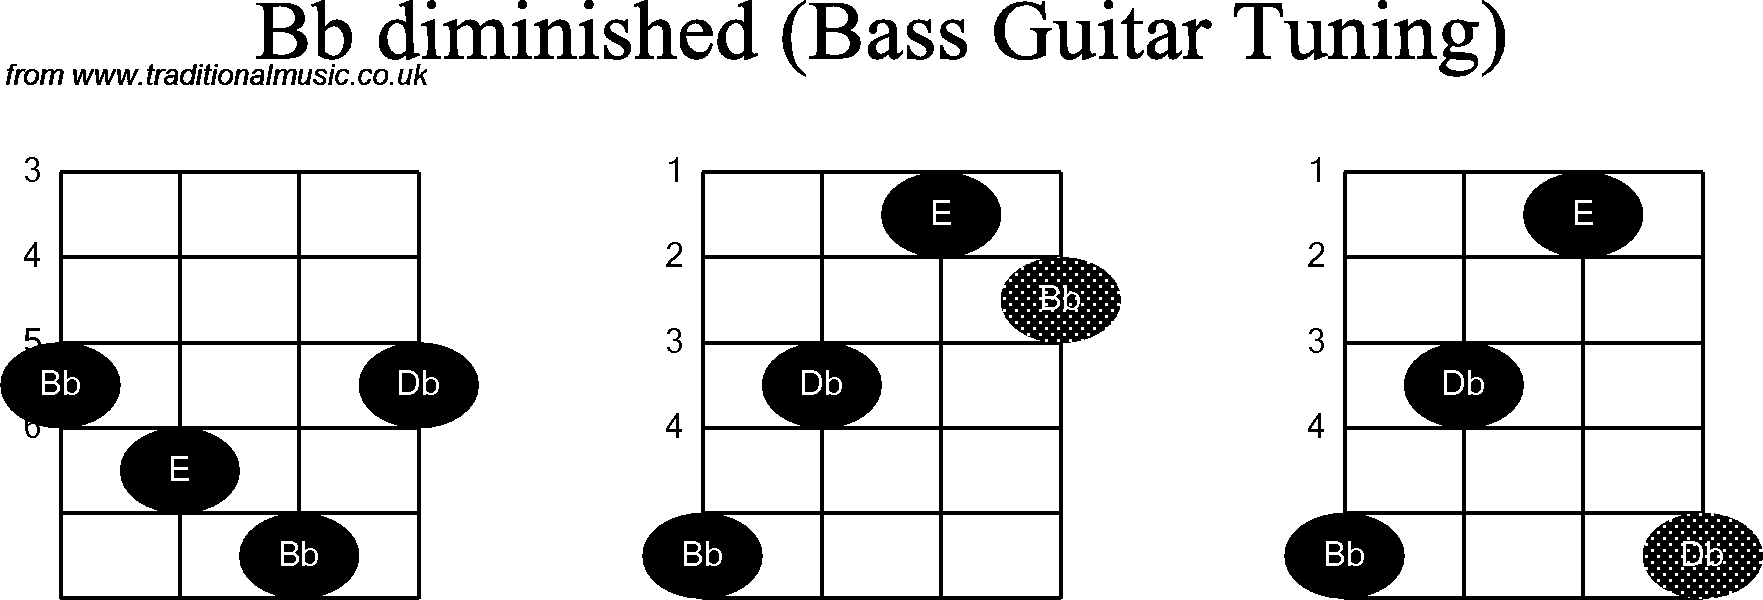 Bass Guitar Chord Diagrams For Bb Diminished